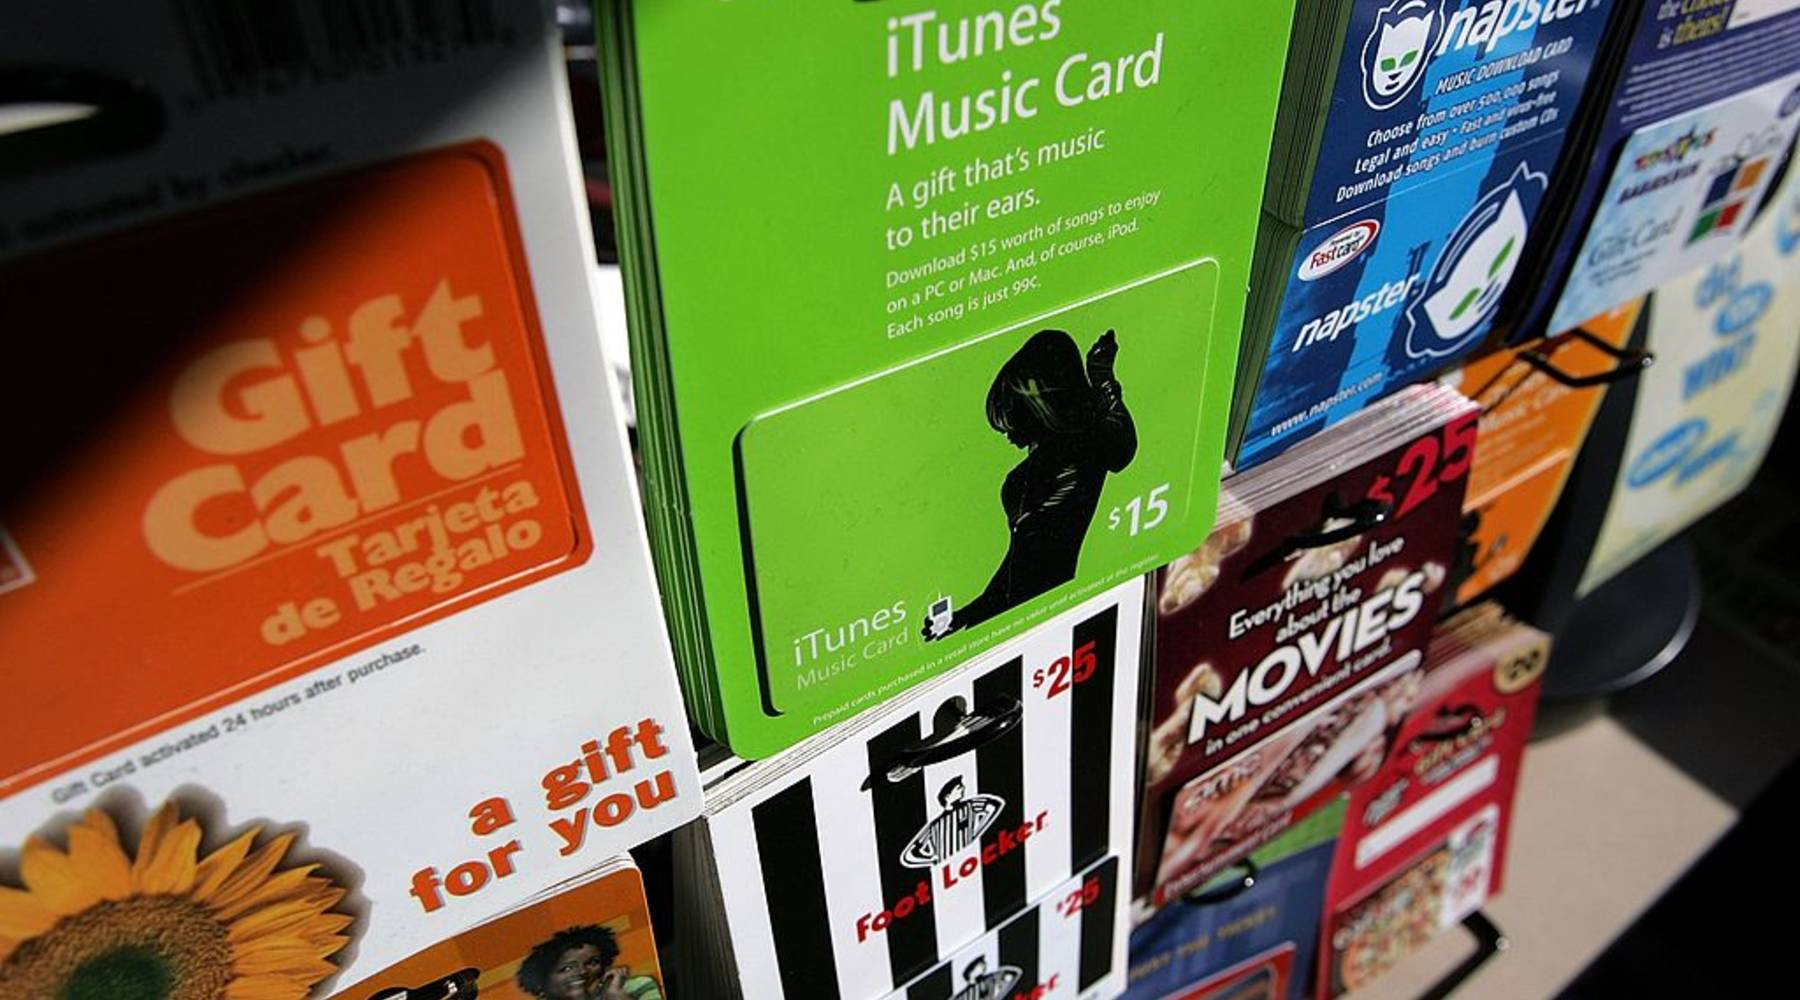 Why do grocery stores sell gift cards to other places